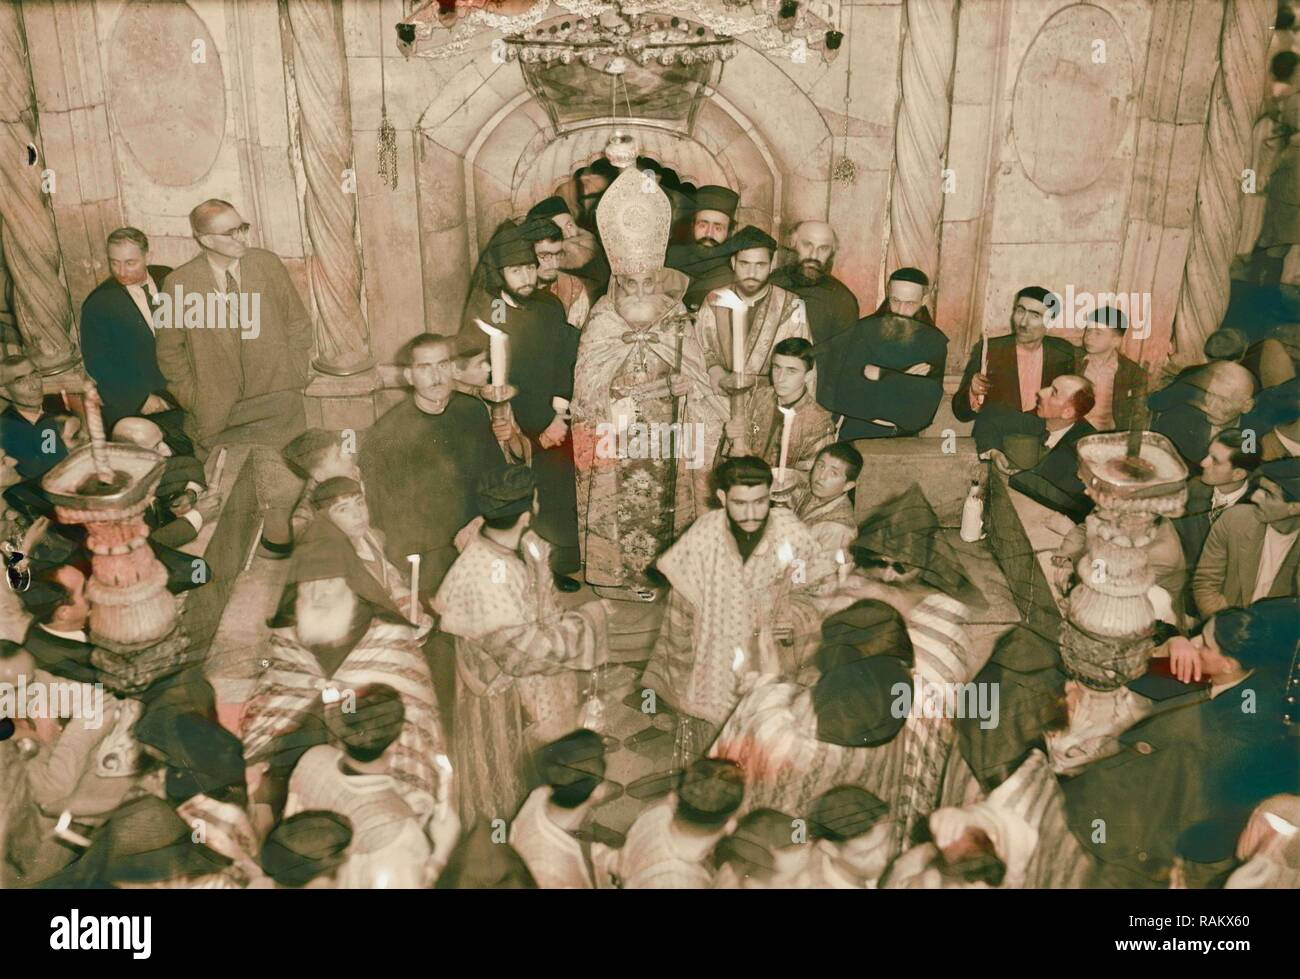 Calendar of religious ceremonies in Jerusalem Easter period 1941 Orthodox Holy Fire, Israel. Reimagined - Stock Image